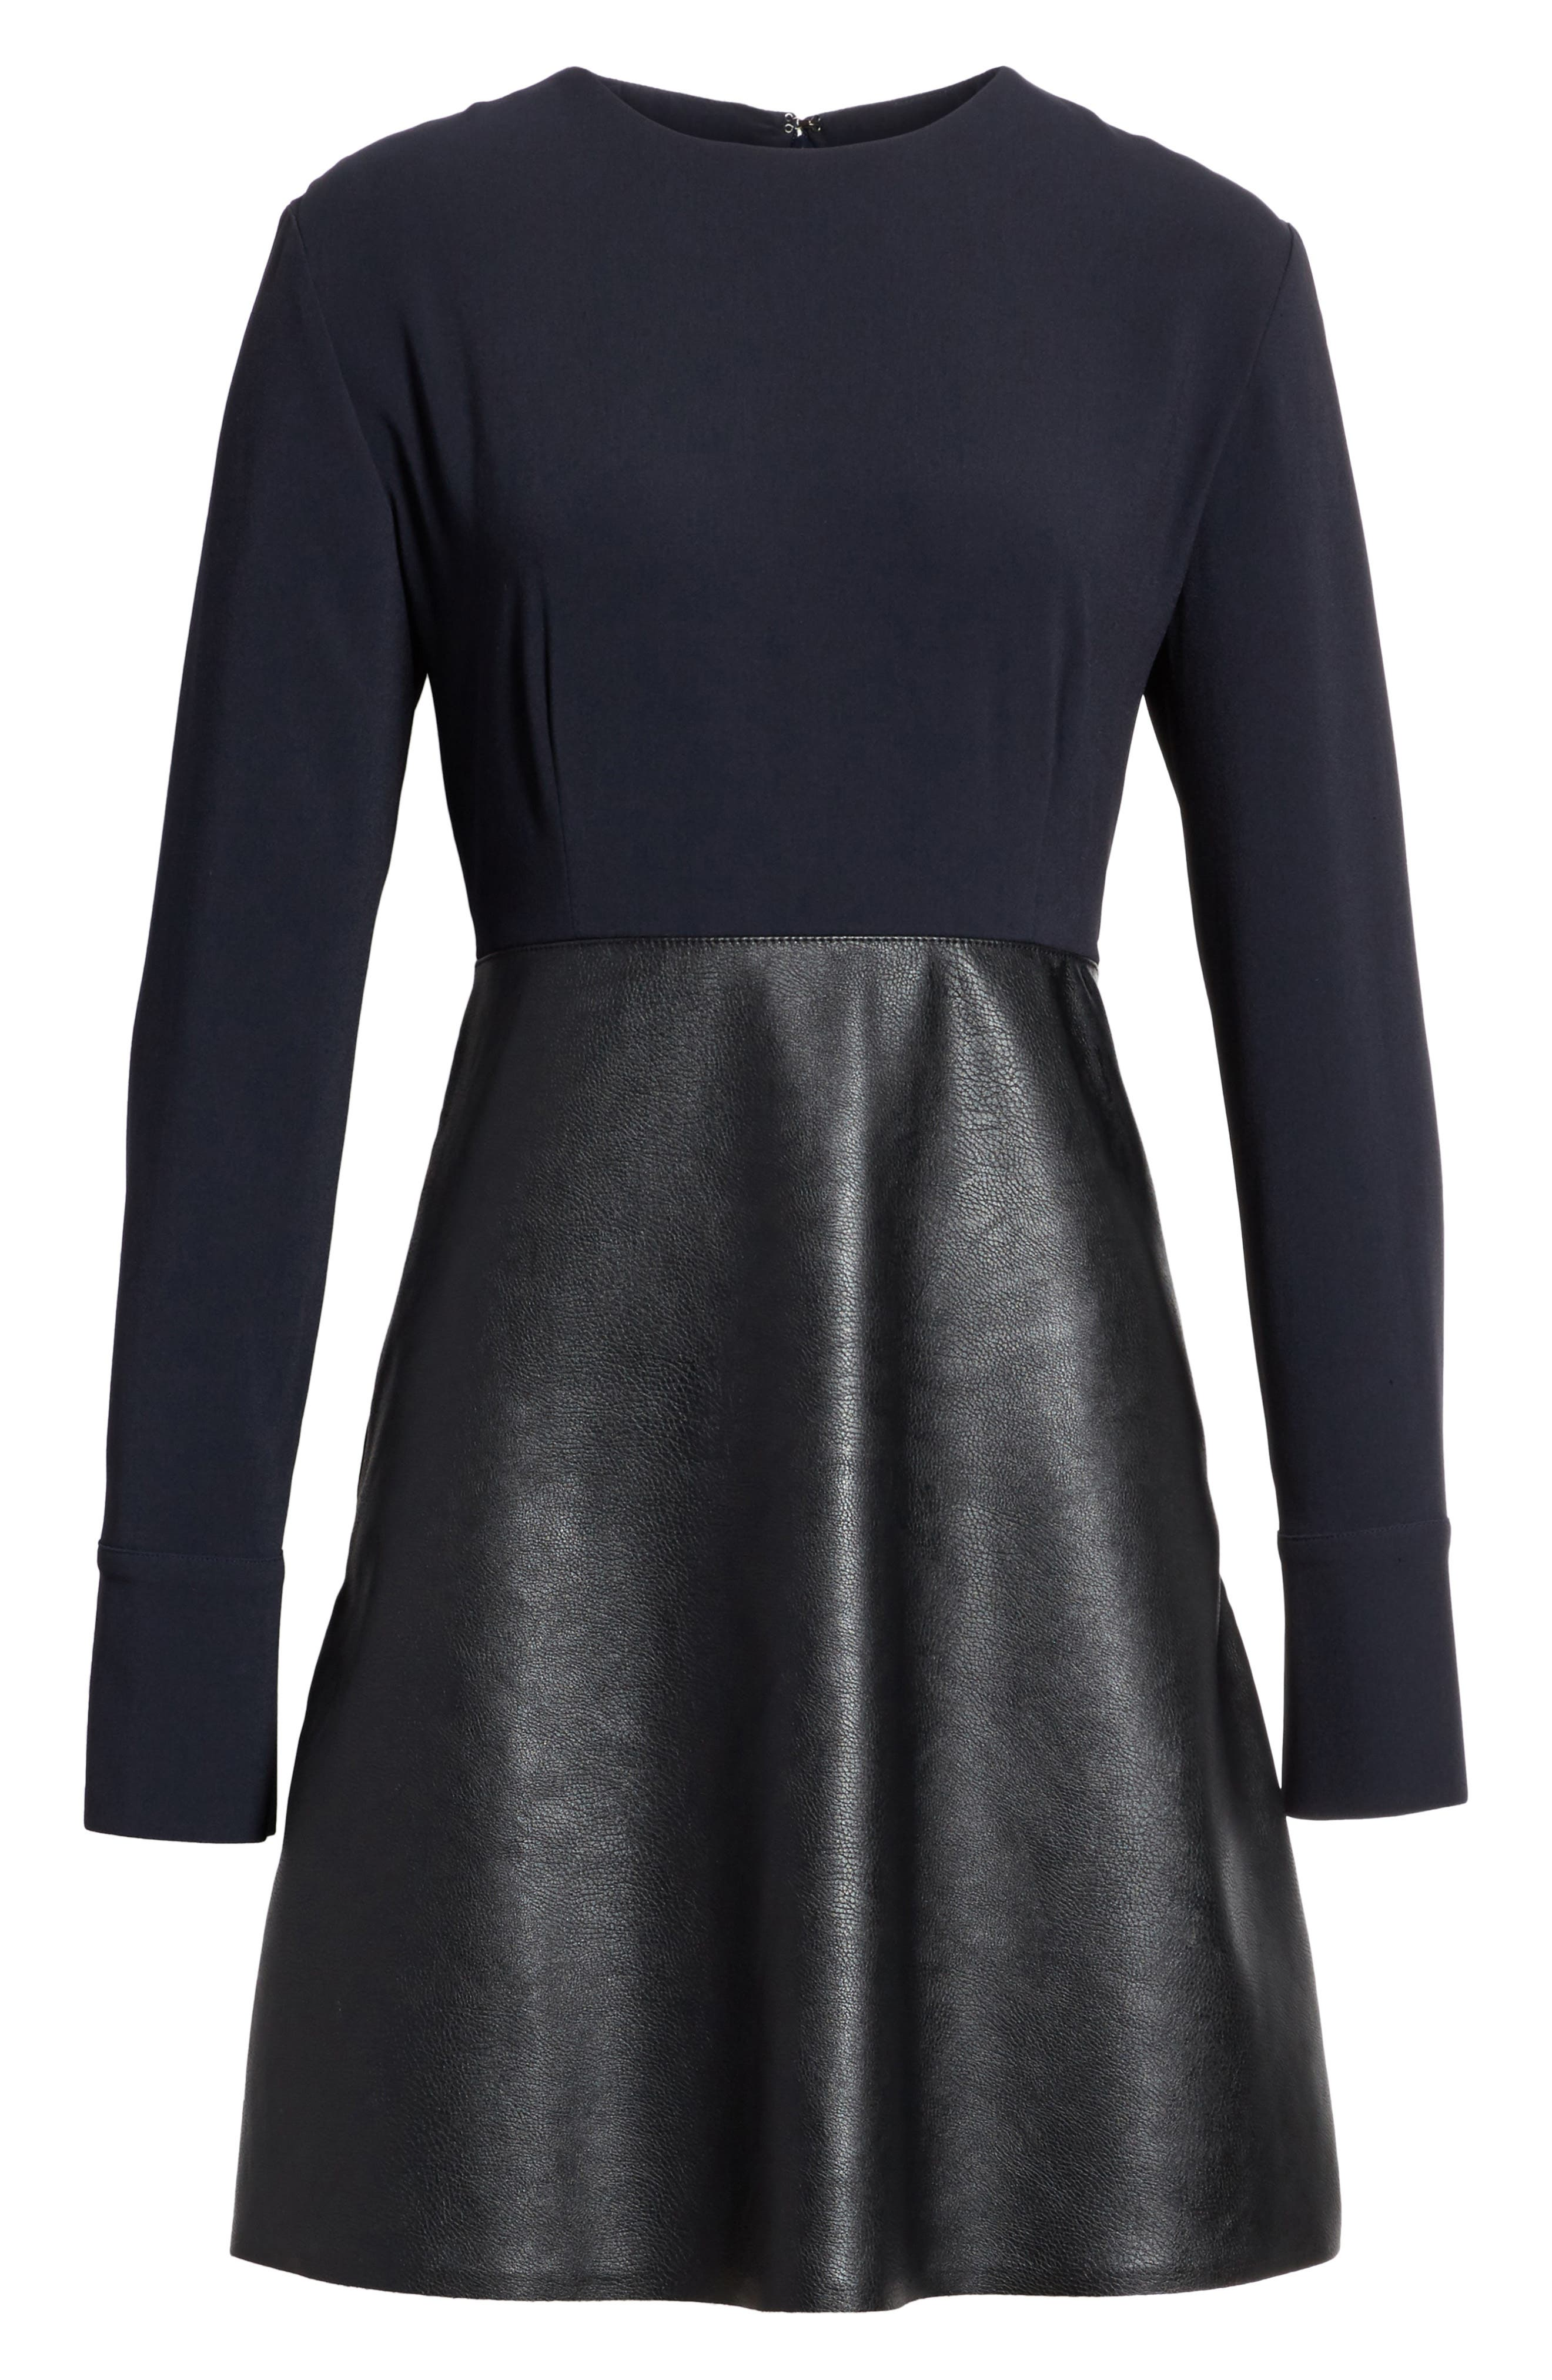 Alter Leather & Stretch Cady Dress,                             Alternate thumbnail 6, color,                             001